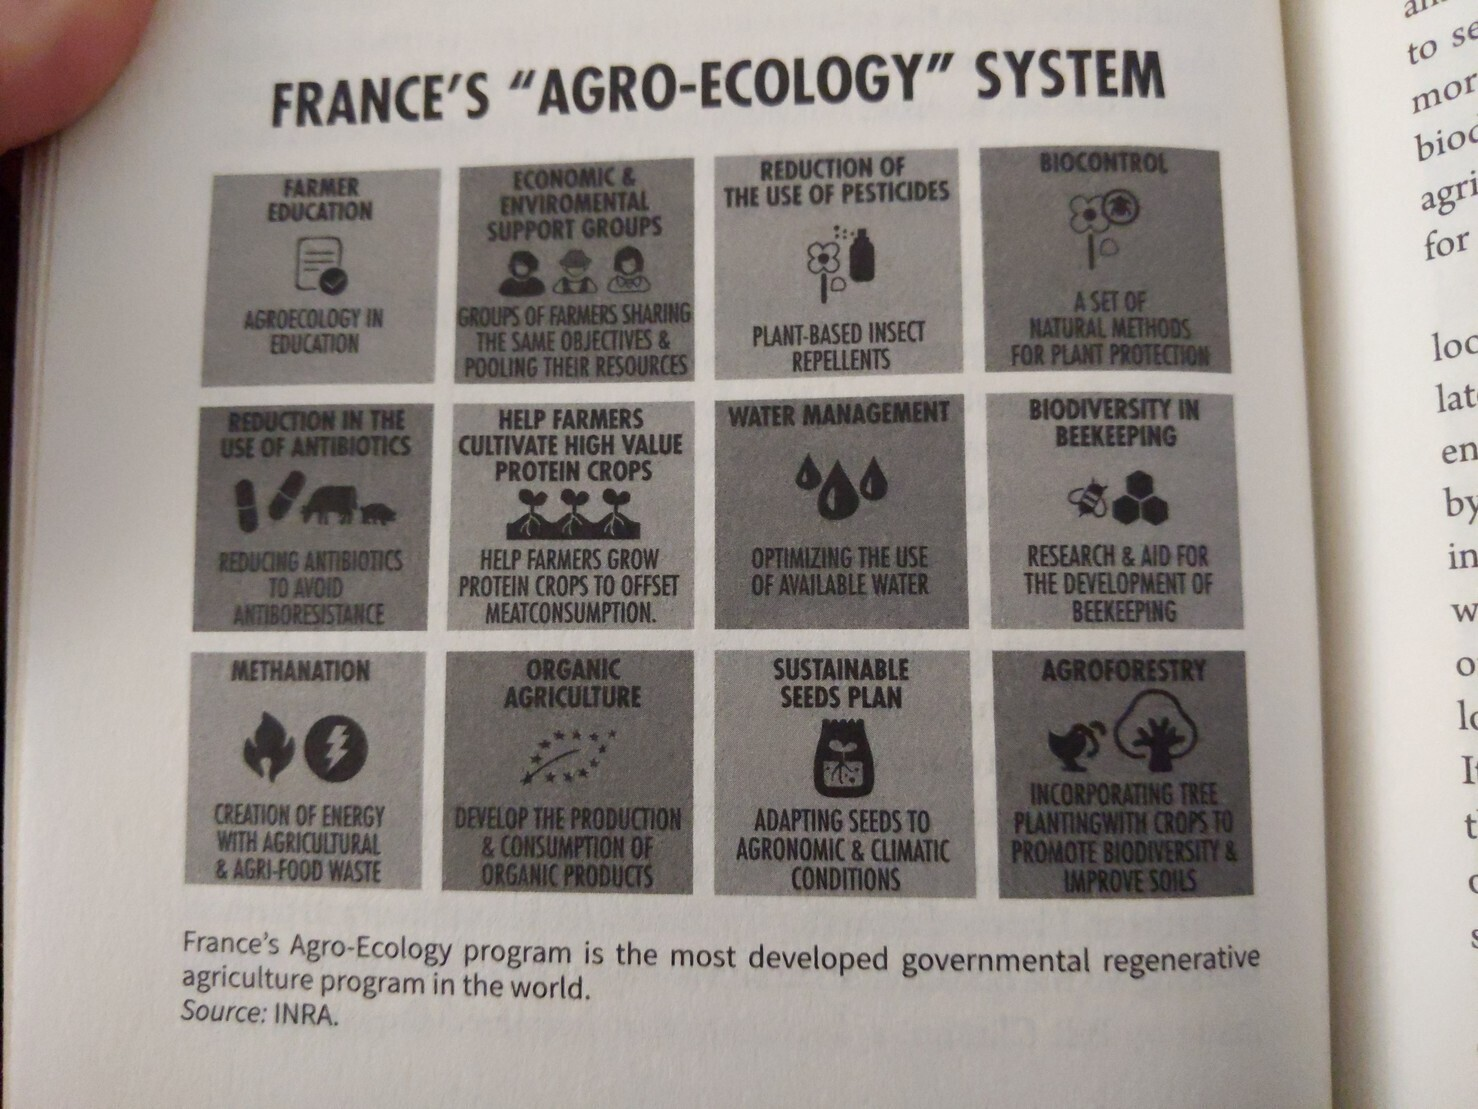 A 12-box plan of France's agro-ecology system.